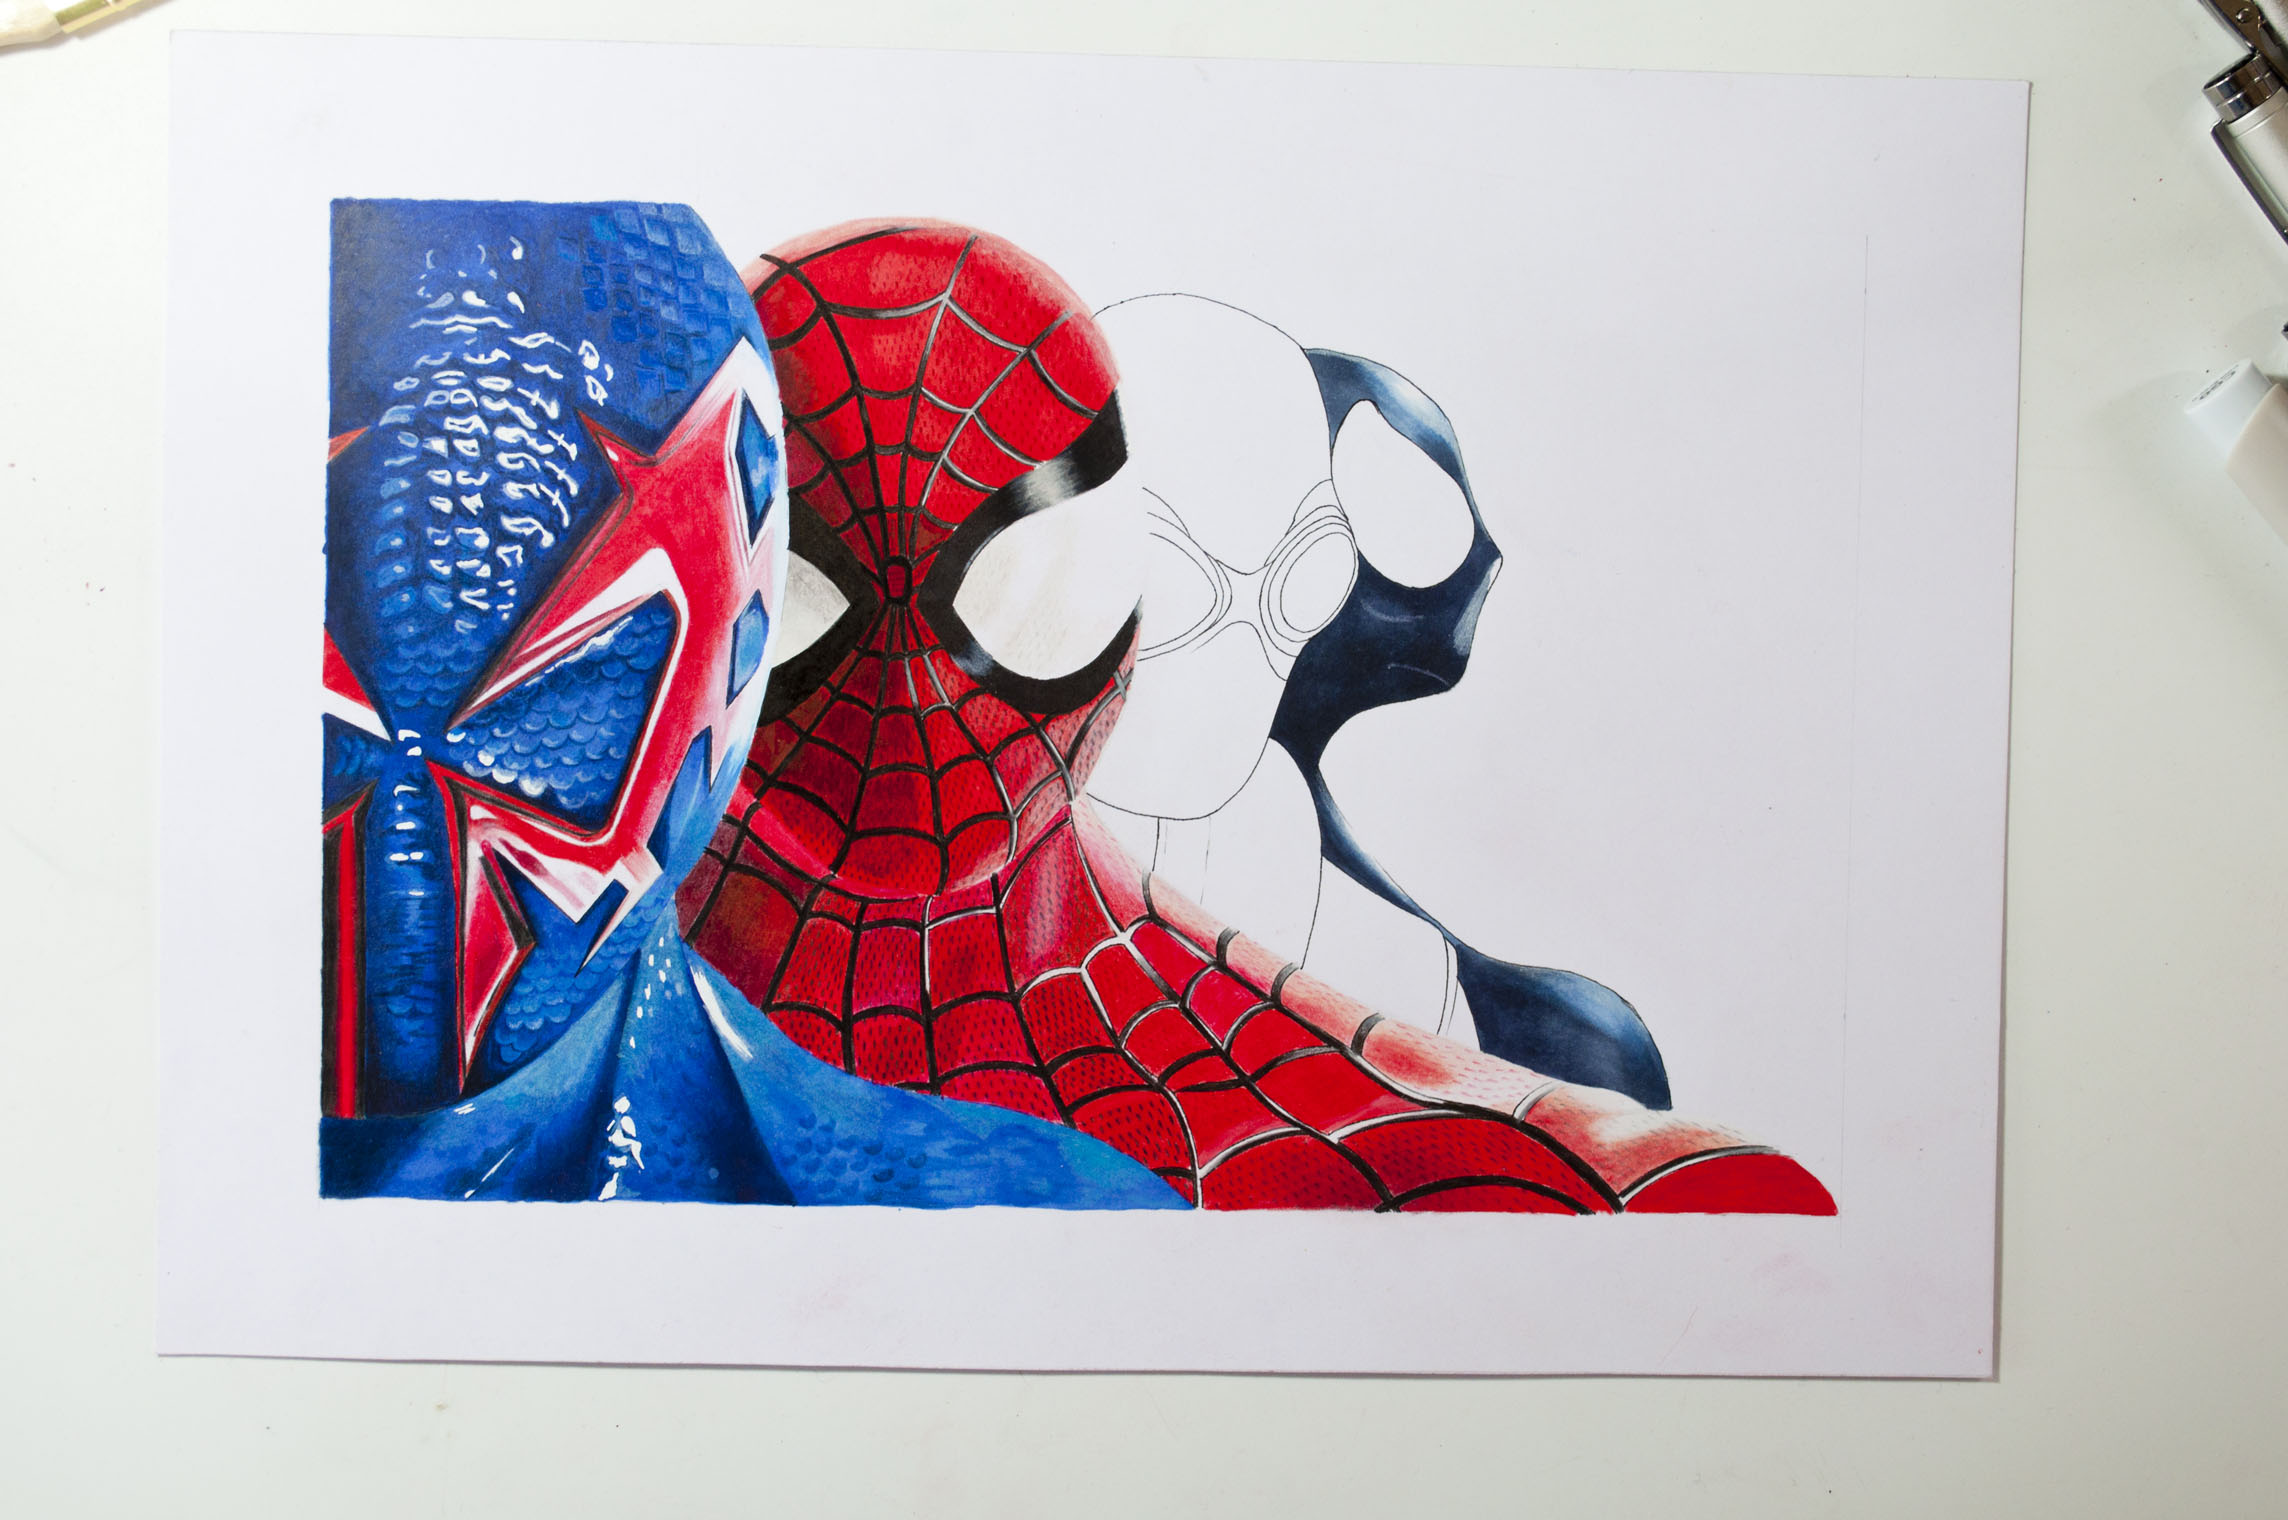 Spiderman Image 5.jpg